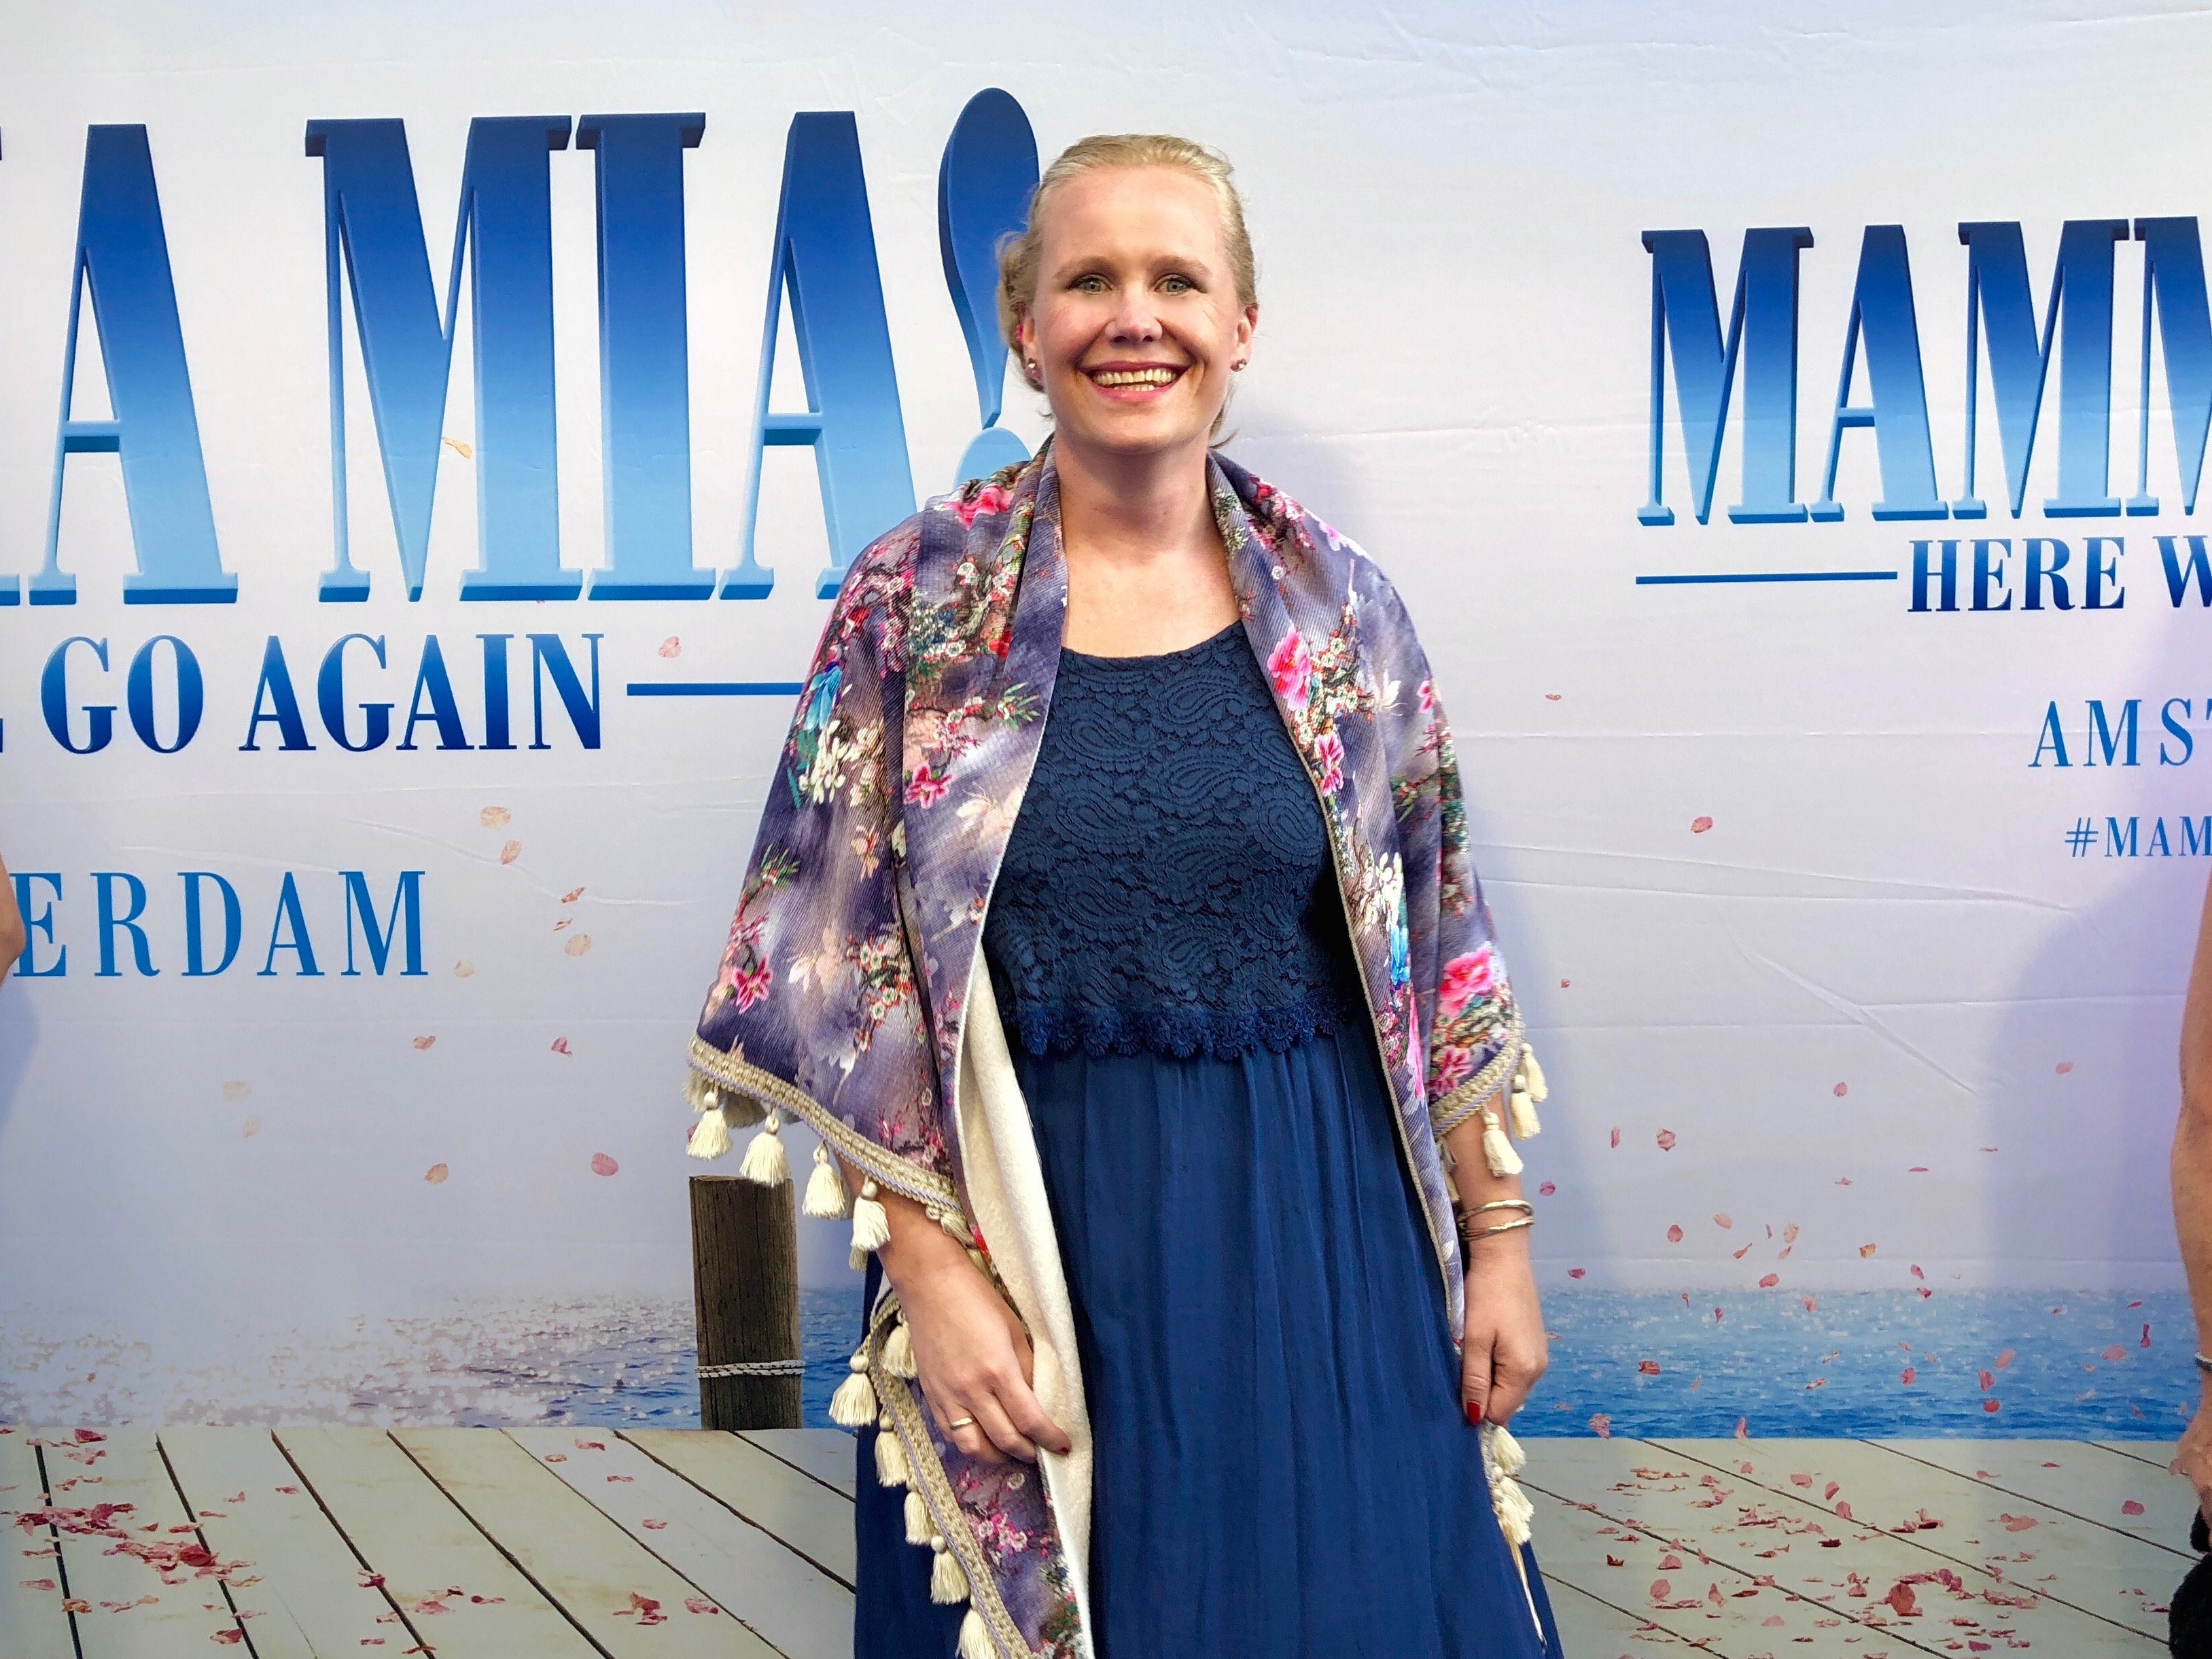 Kalokairi Mamma Mia: Here we go again